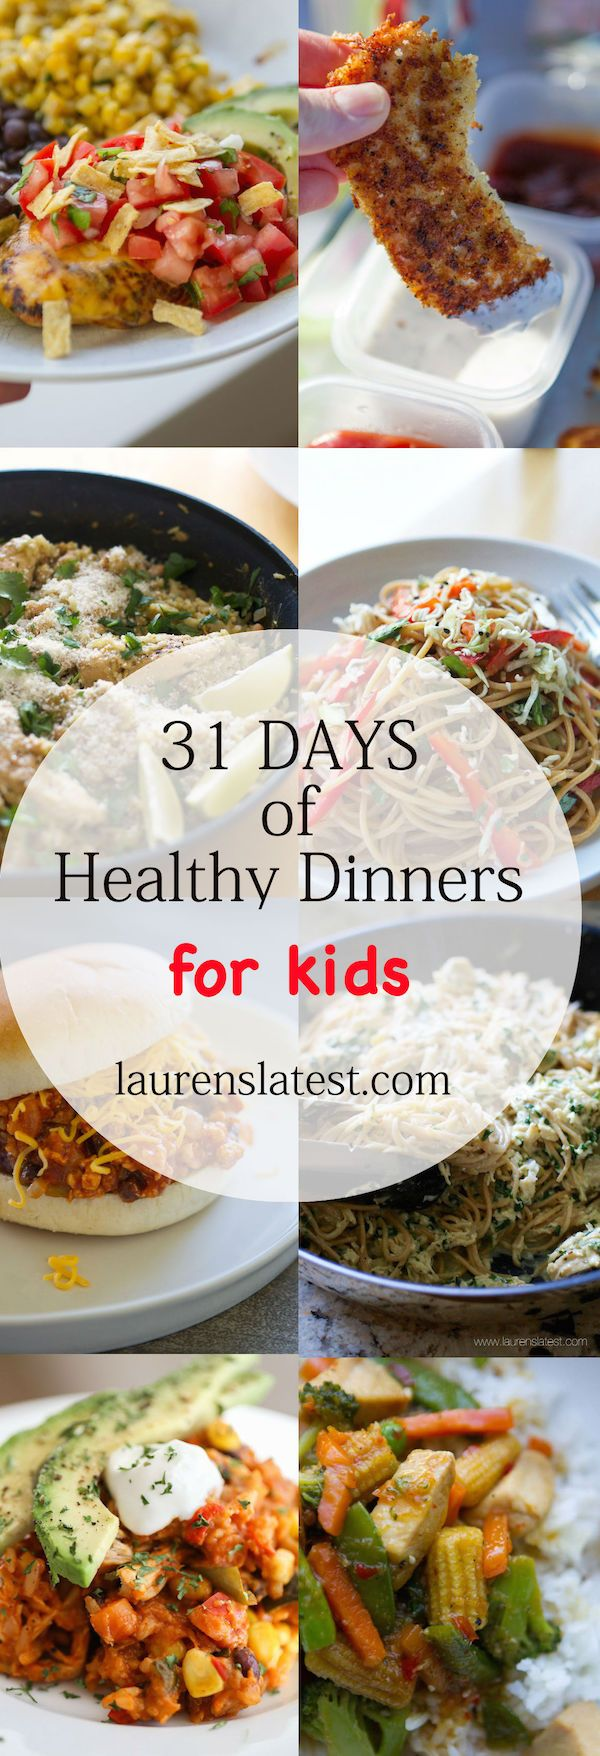 Get 31 recipes for Healthy Dinners that your kids will LOVE! Super palatable, beautiful and delicious dinners that will set you up for a full month of healthy eating success!  January is upon us! That means the good majority of you are on your way to healthier eating. I am kinda/sorta always on that healthy …